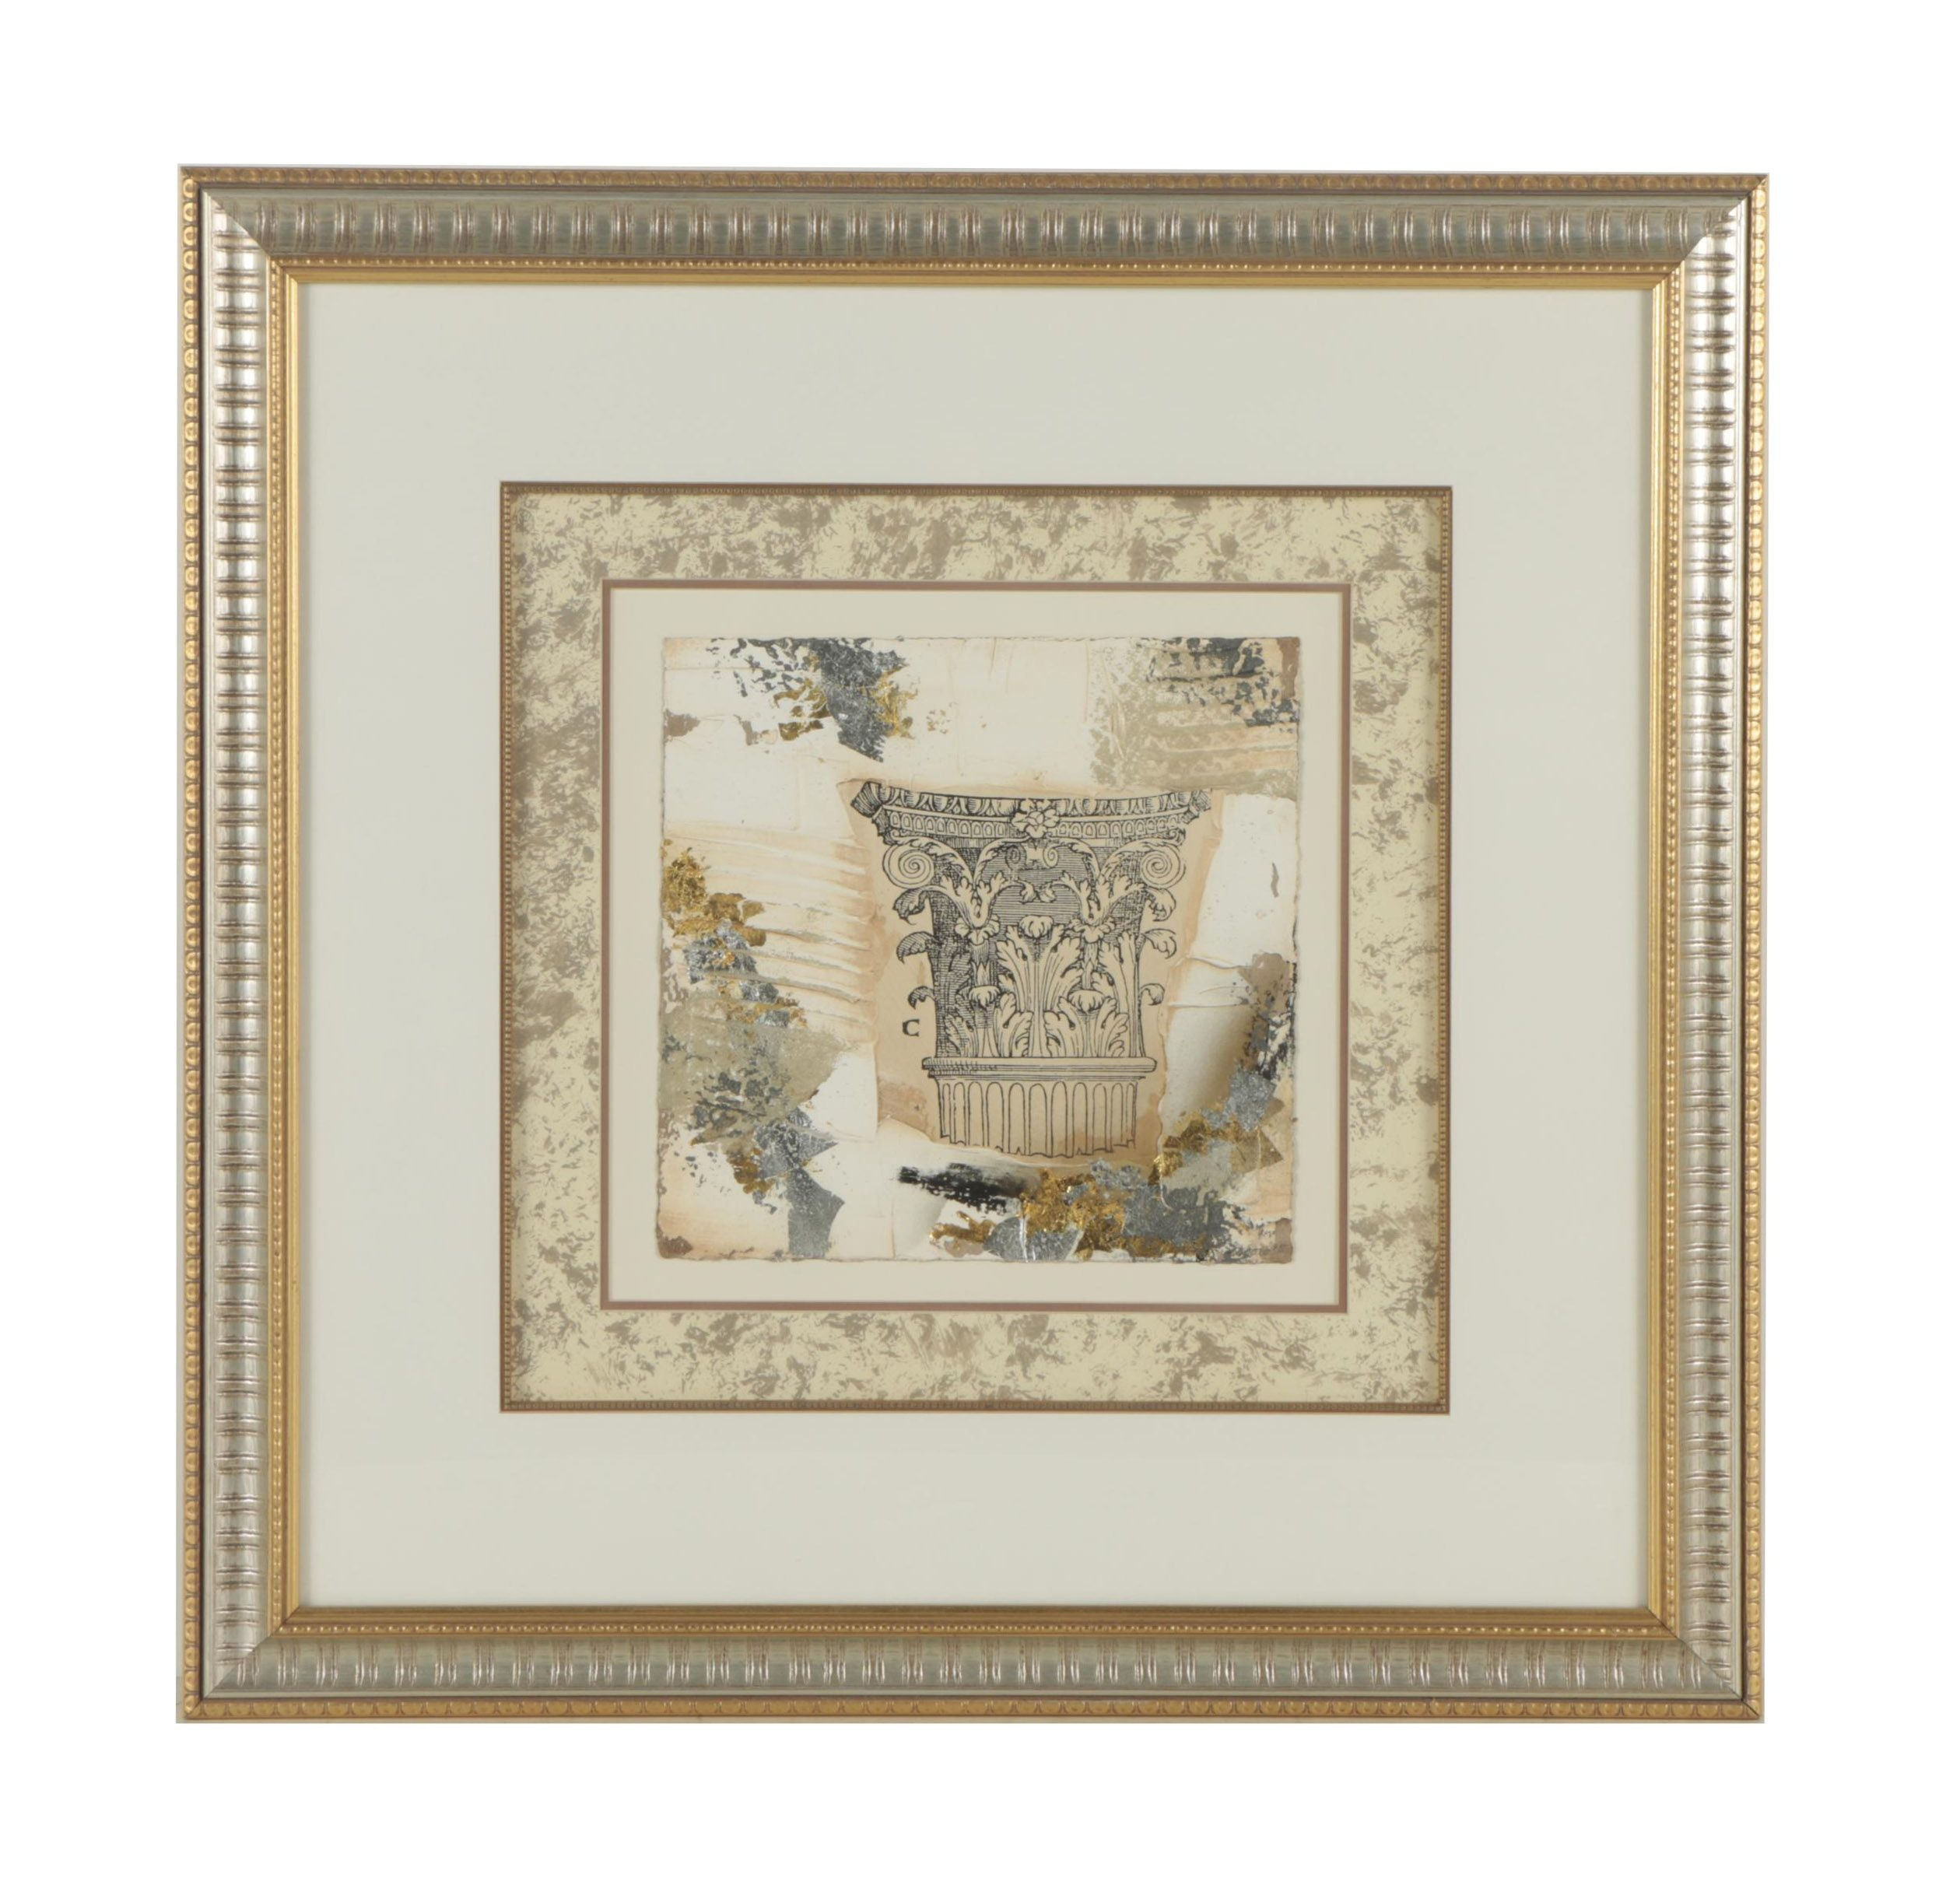 Mixed Media of Architectural Fragments